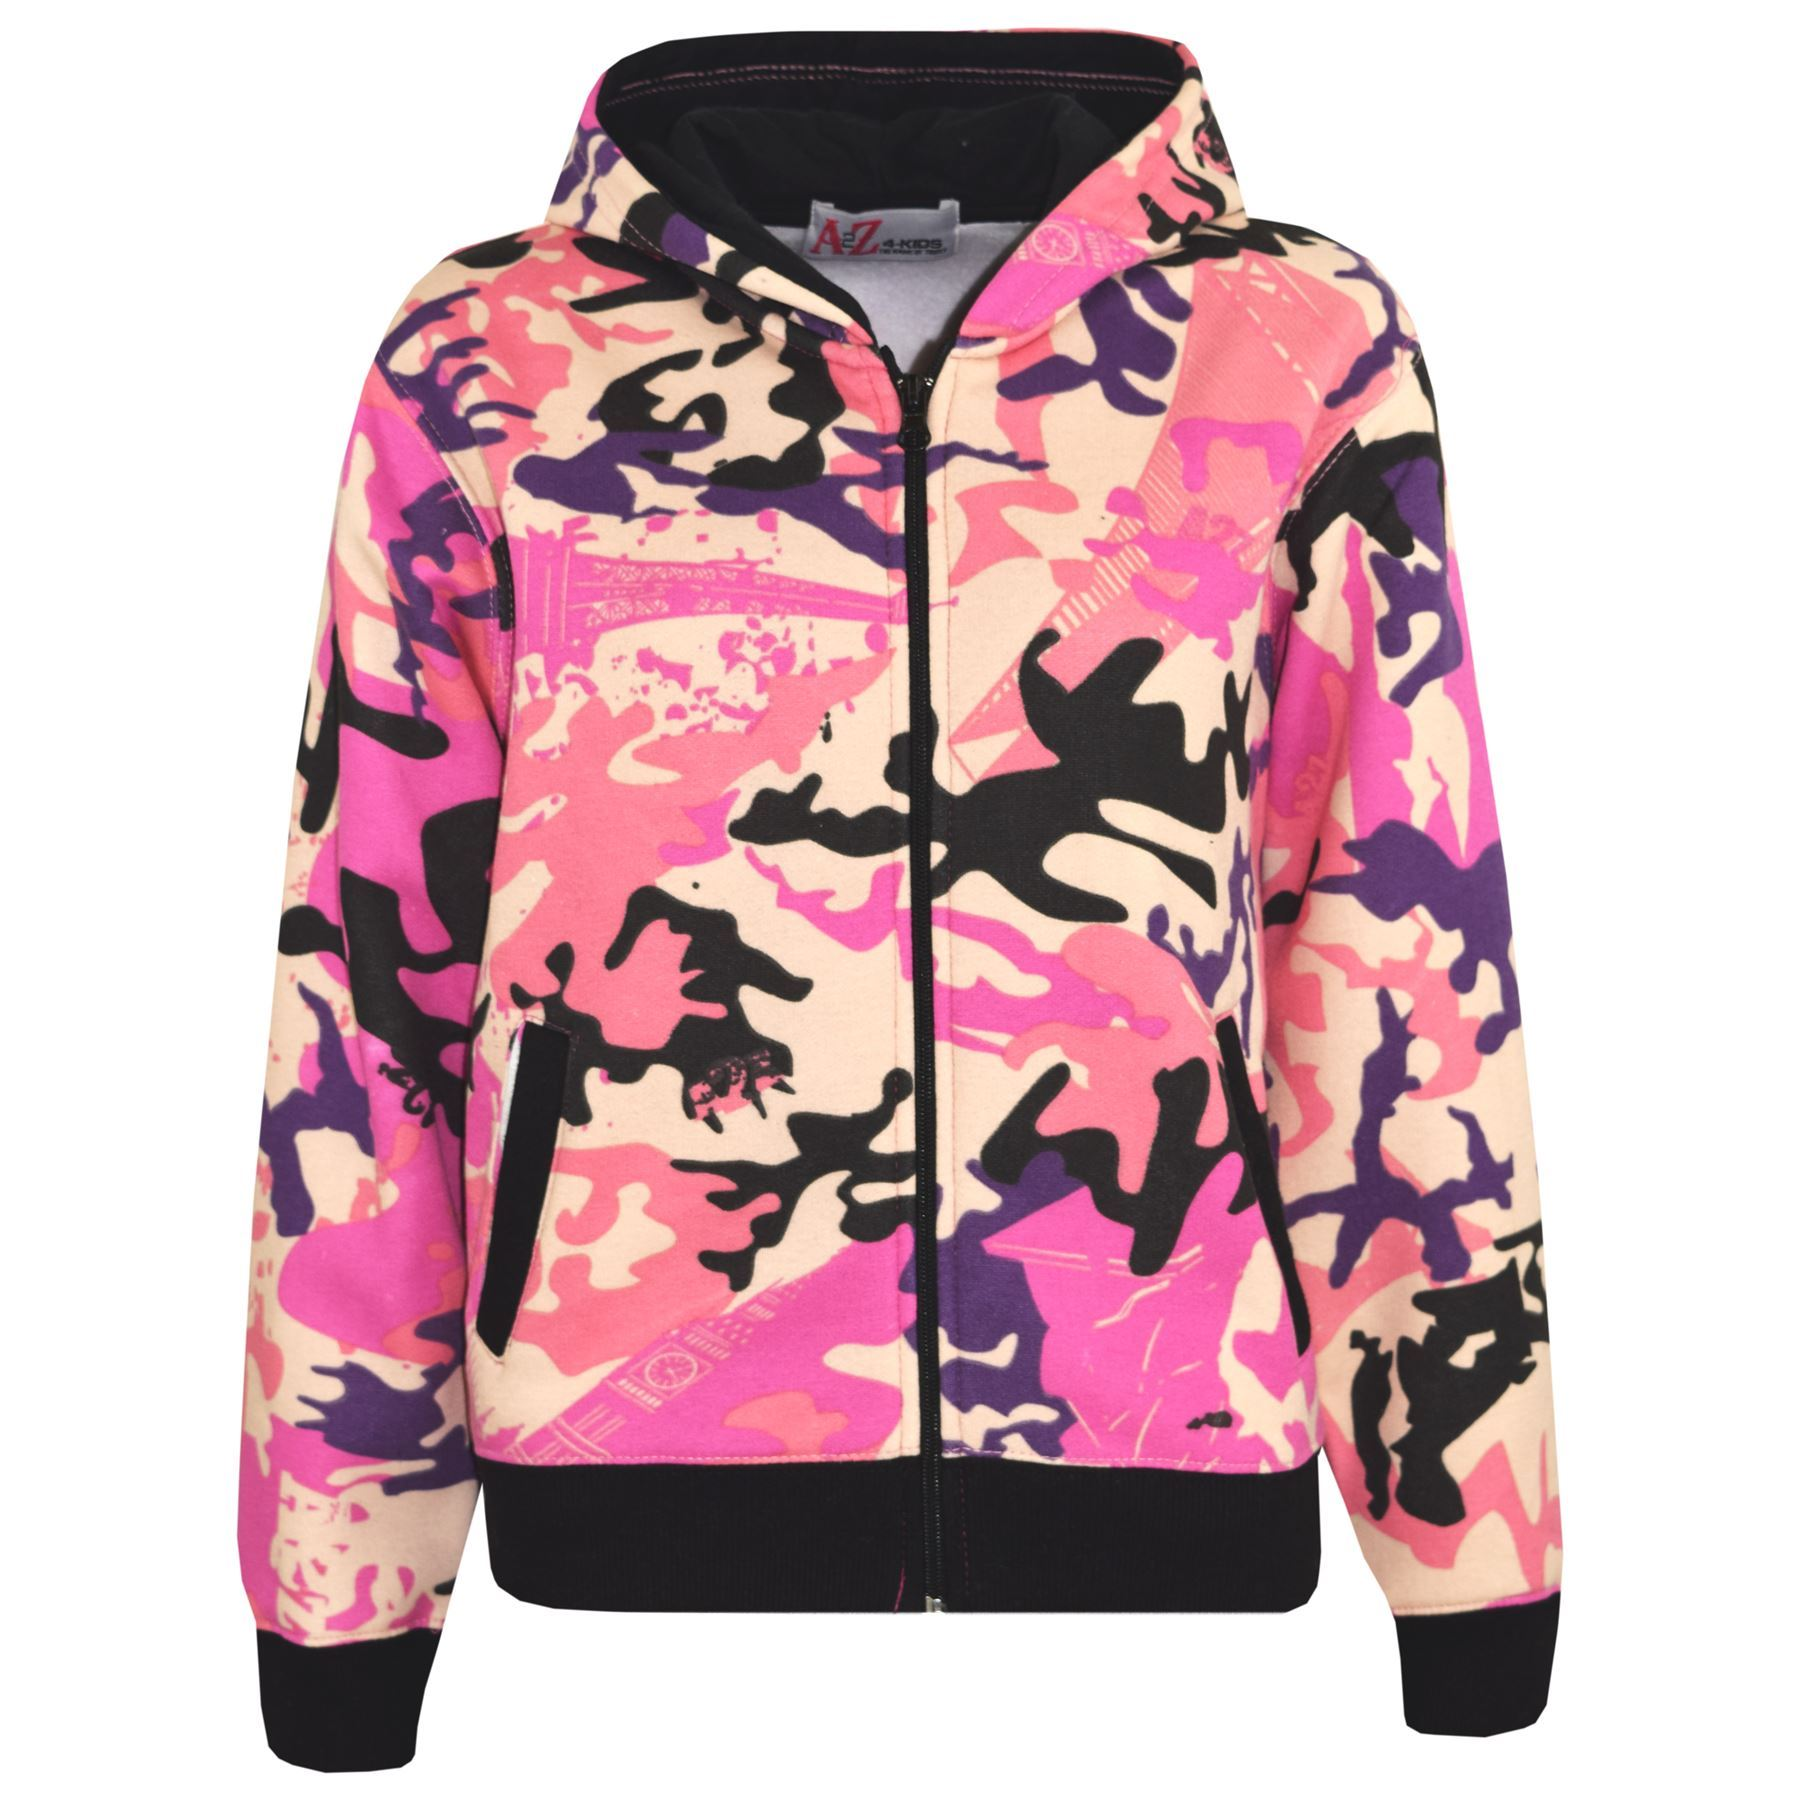 Girls Tracksuit Kids A2Z Camouflage Baby Pink Top /& Bottom Jogging Suit 5-13 Yr